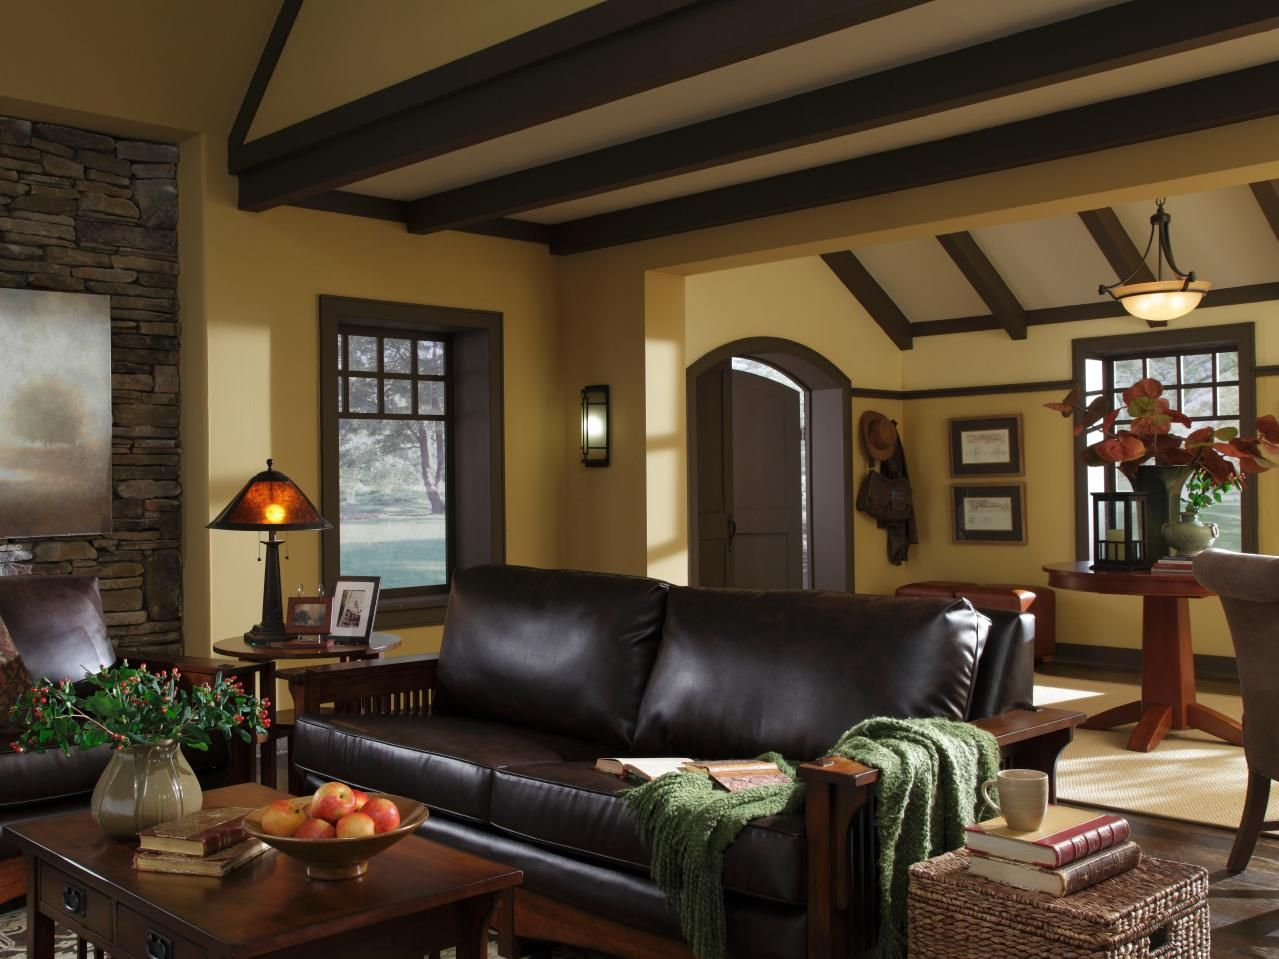 Interior Paint Design Ideas For Living Rooms Molding And Trim Make An Impact  Craftsman Bungalows Dark Wood